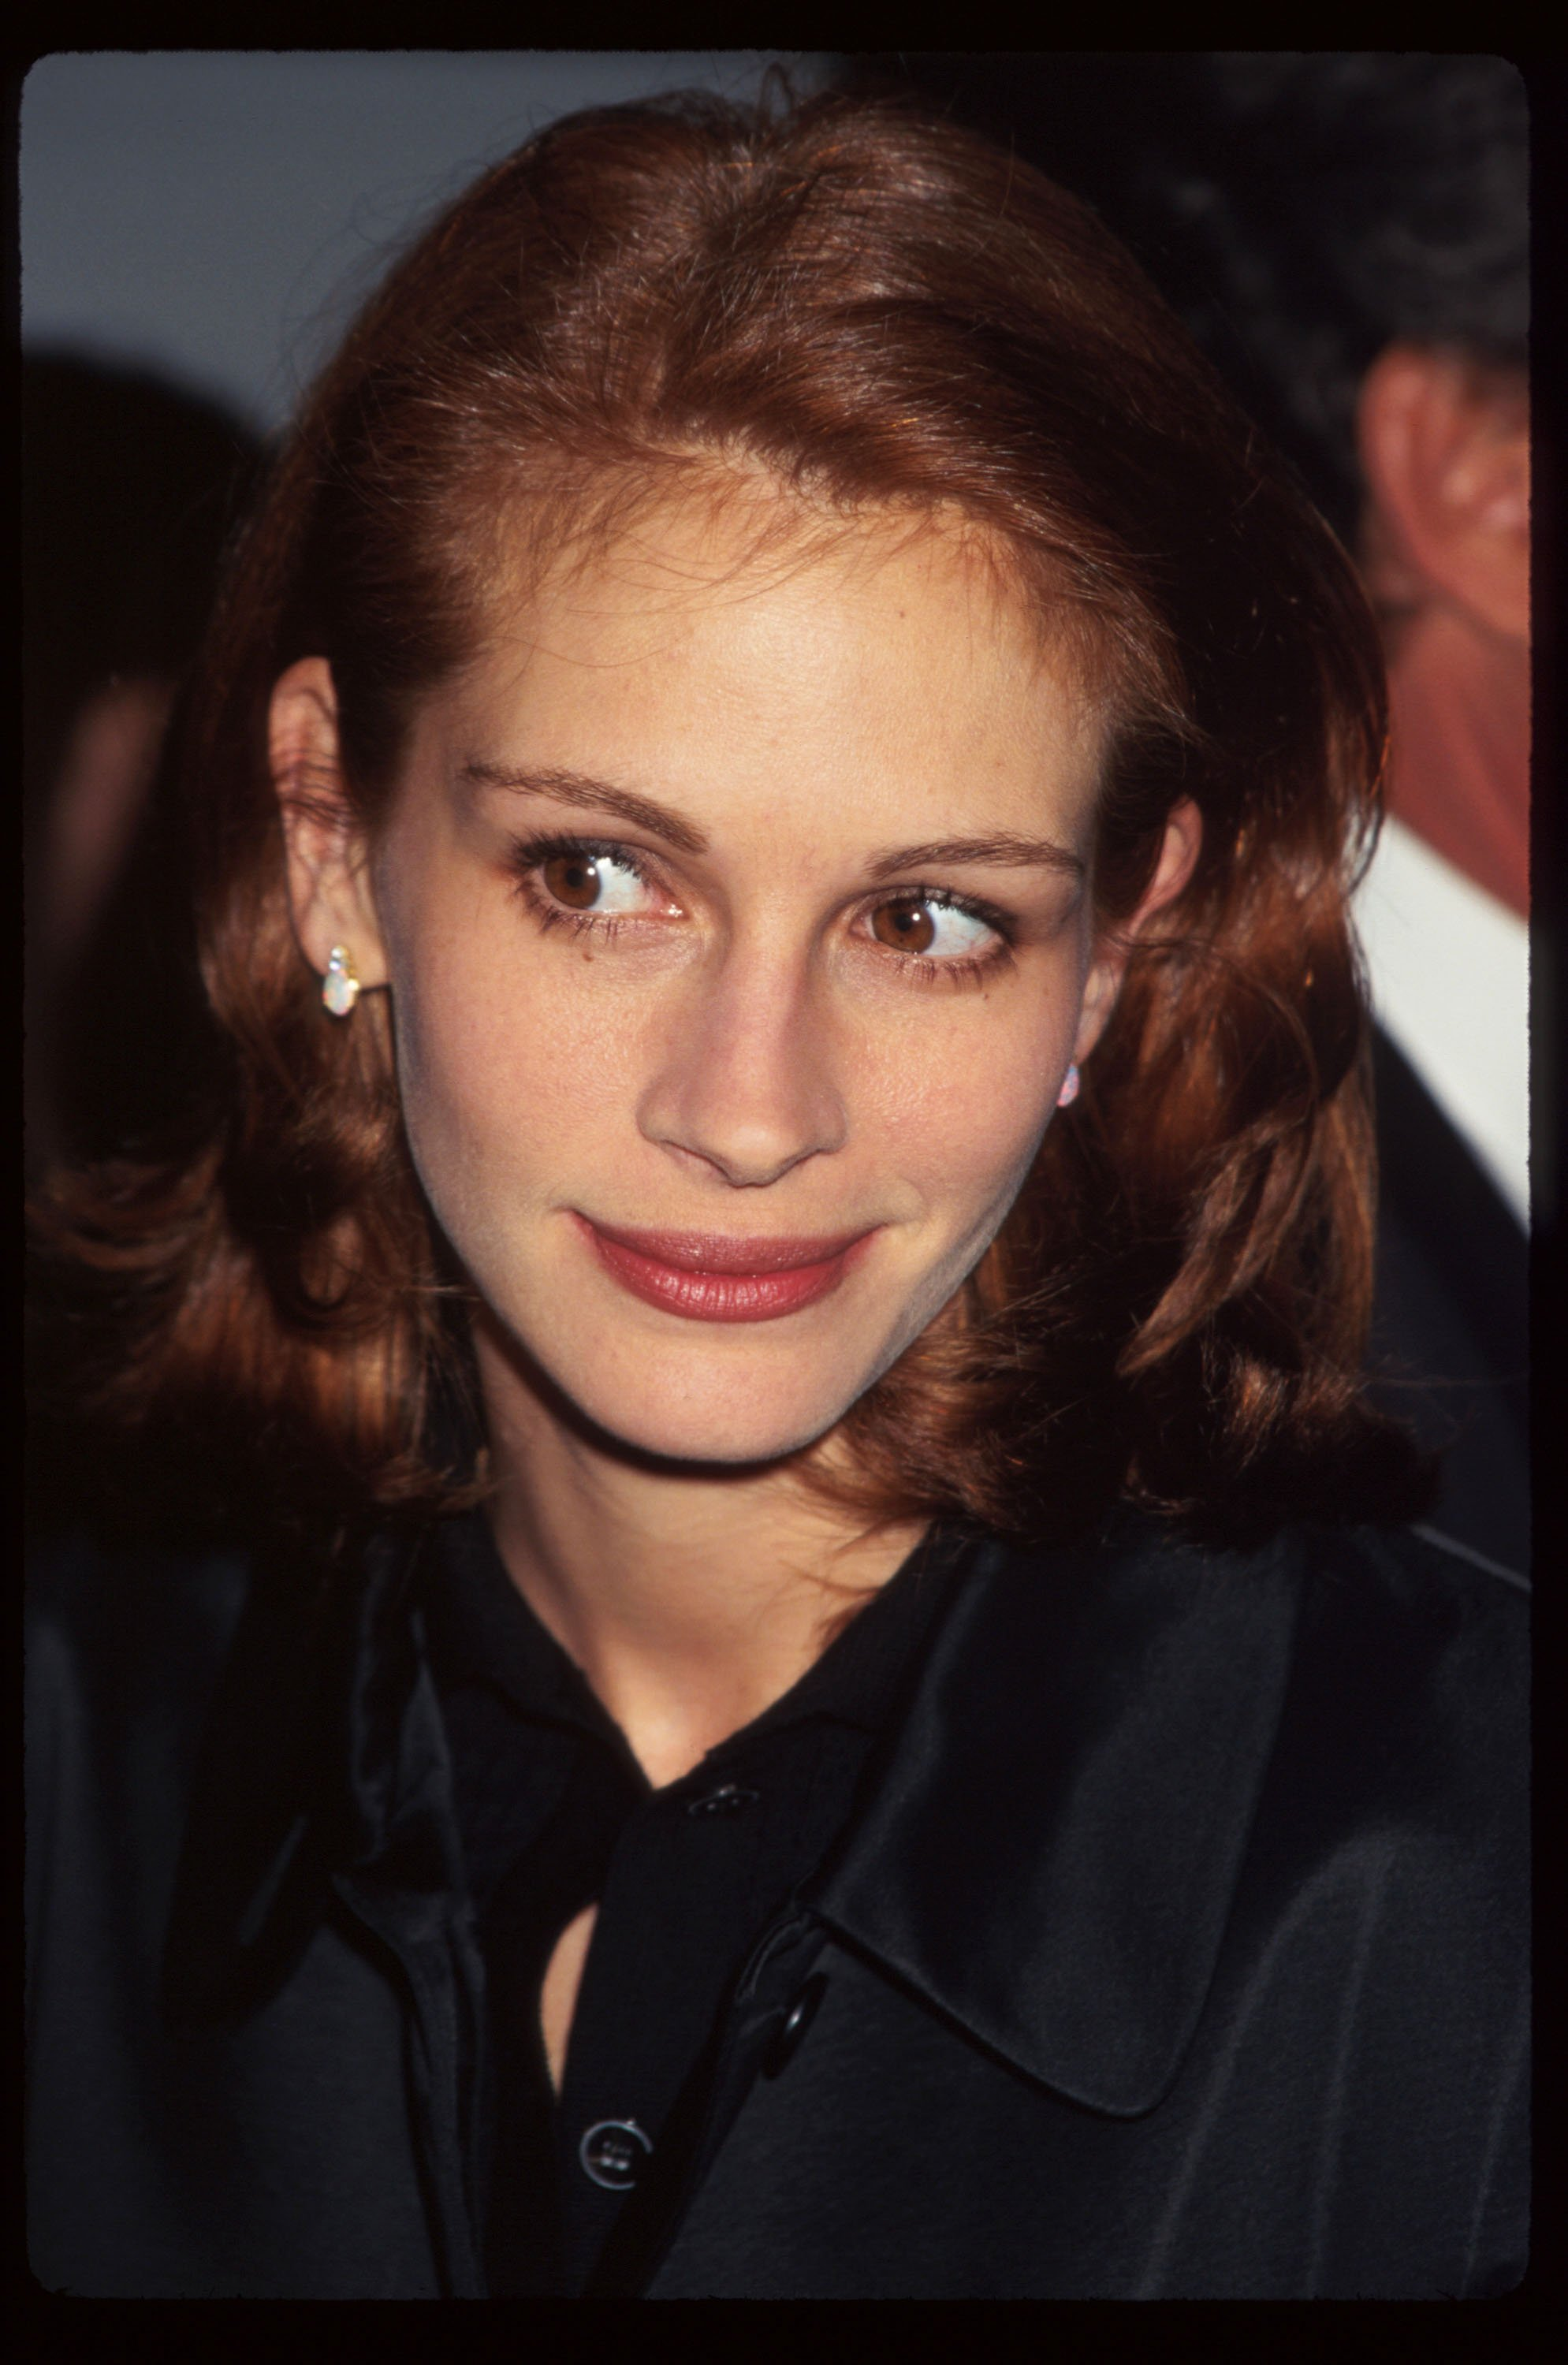 Image Source: Getty Images/Photo of Julia Roberts